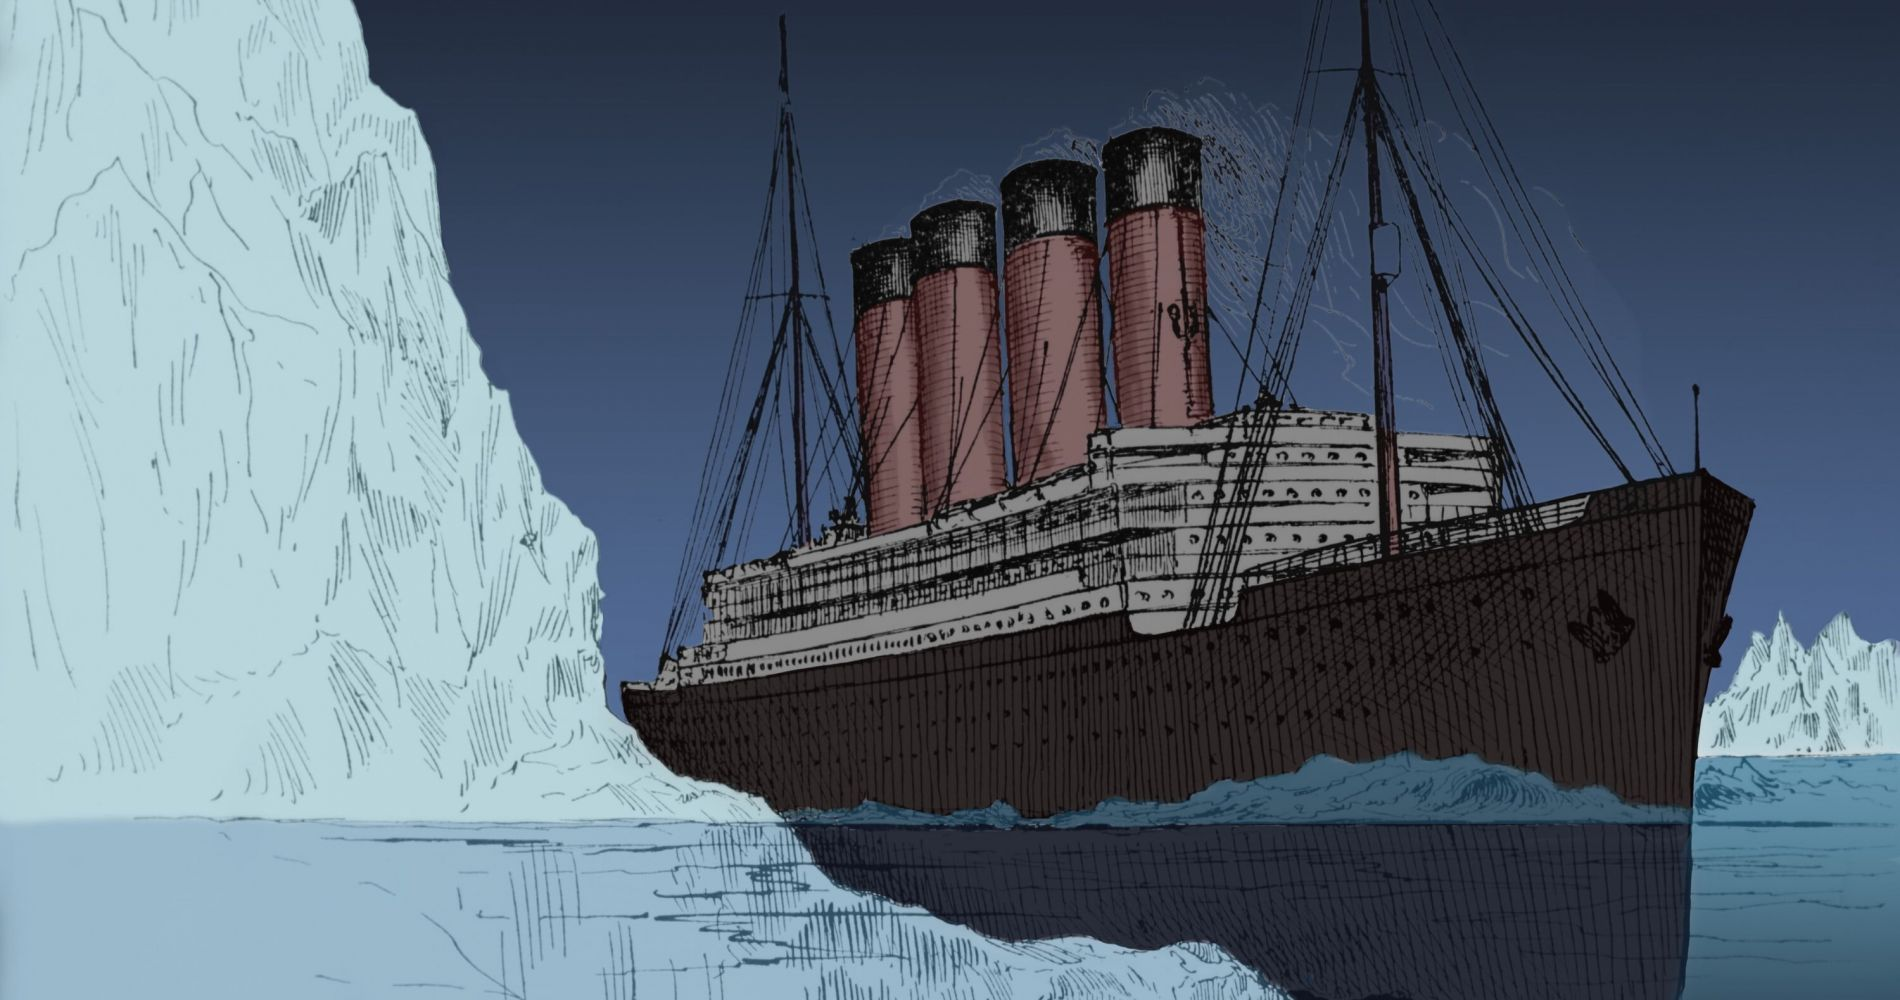 Visit Titanic - The Artifact Exhibition and other Attractions